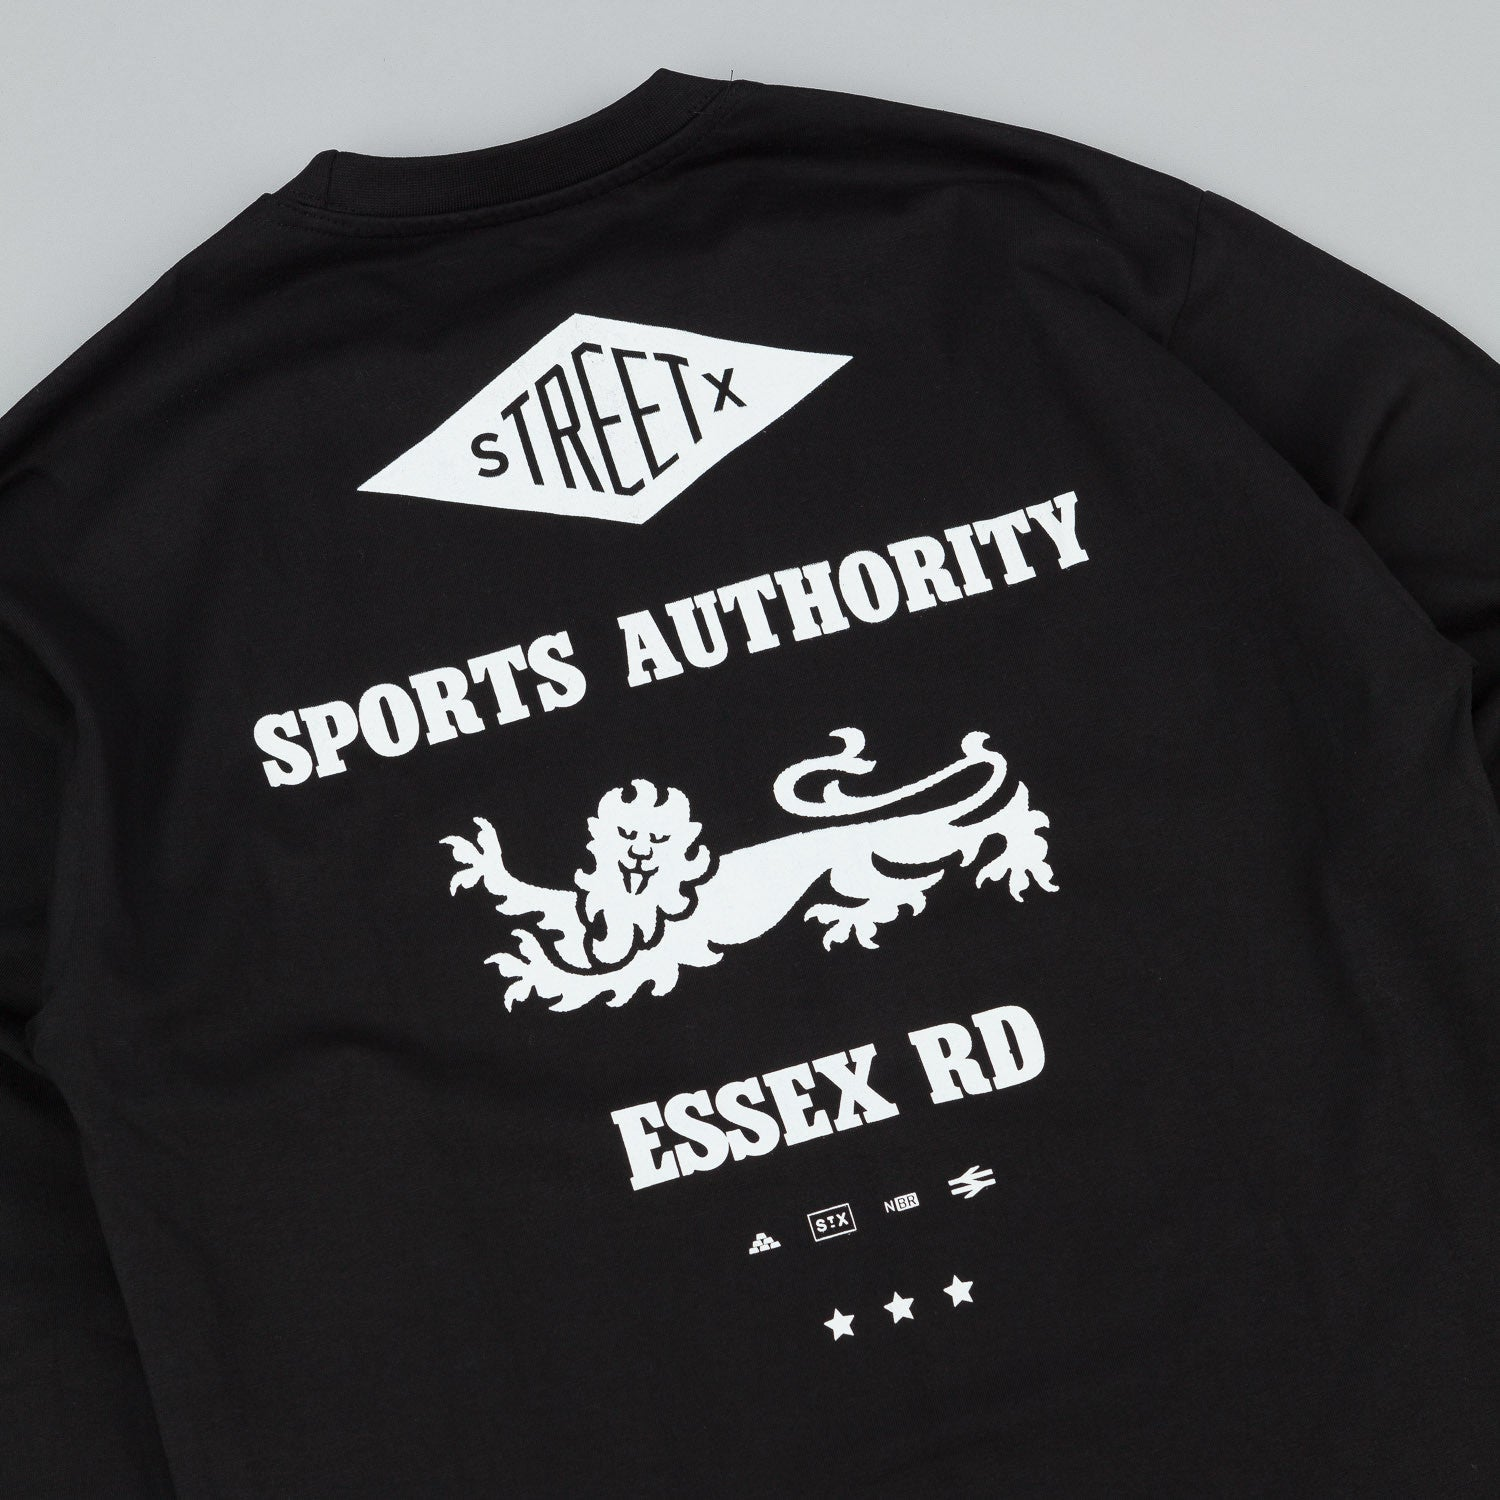 StreetX Essex Long Sleeve T-Shirt - Black